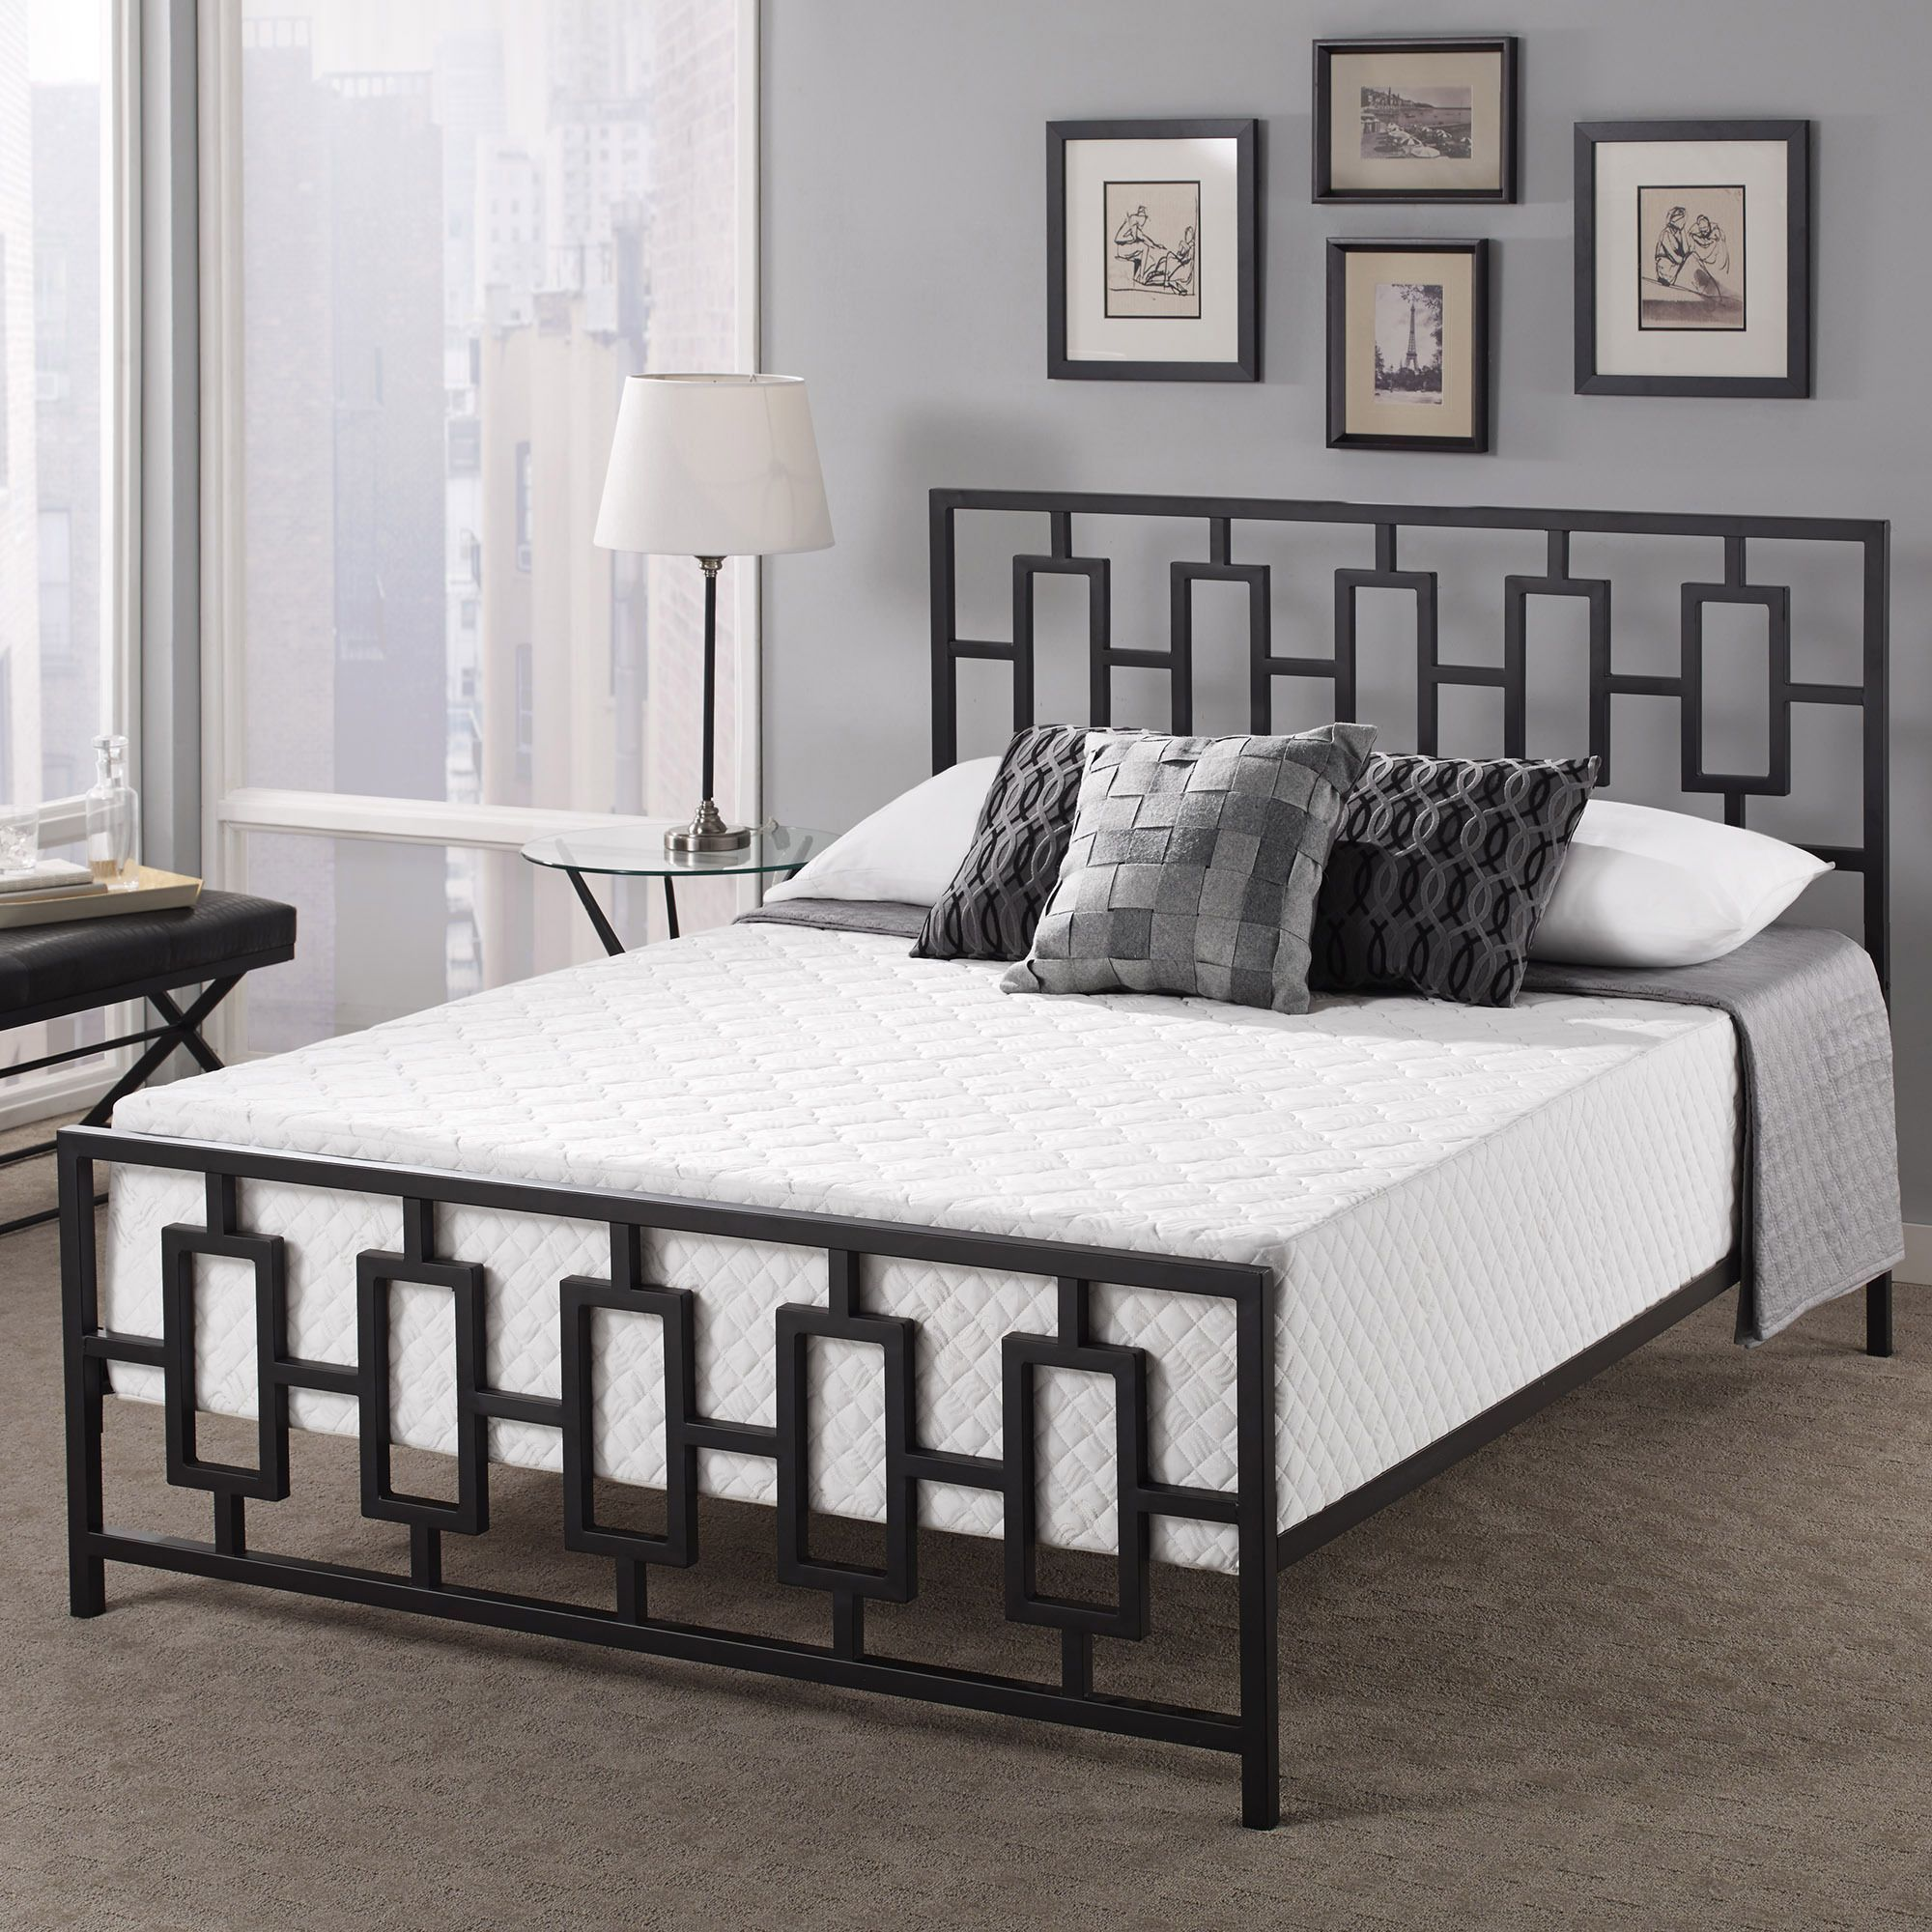 Touch Of Comfort Premium 14 Inch California King Size Memory Foam